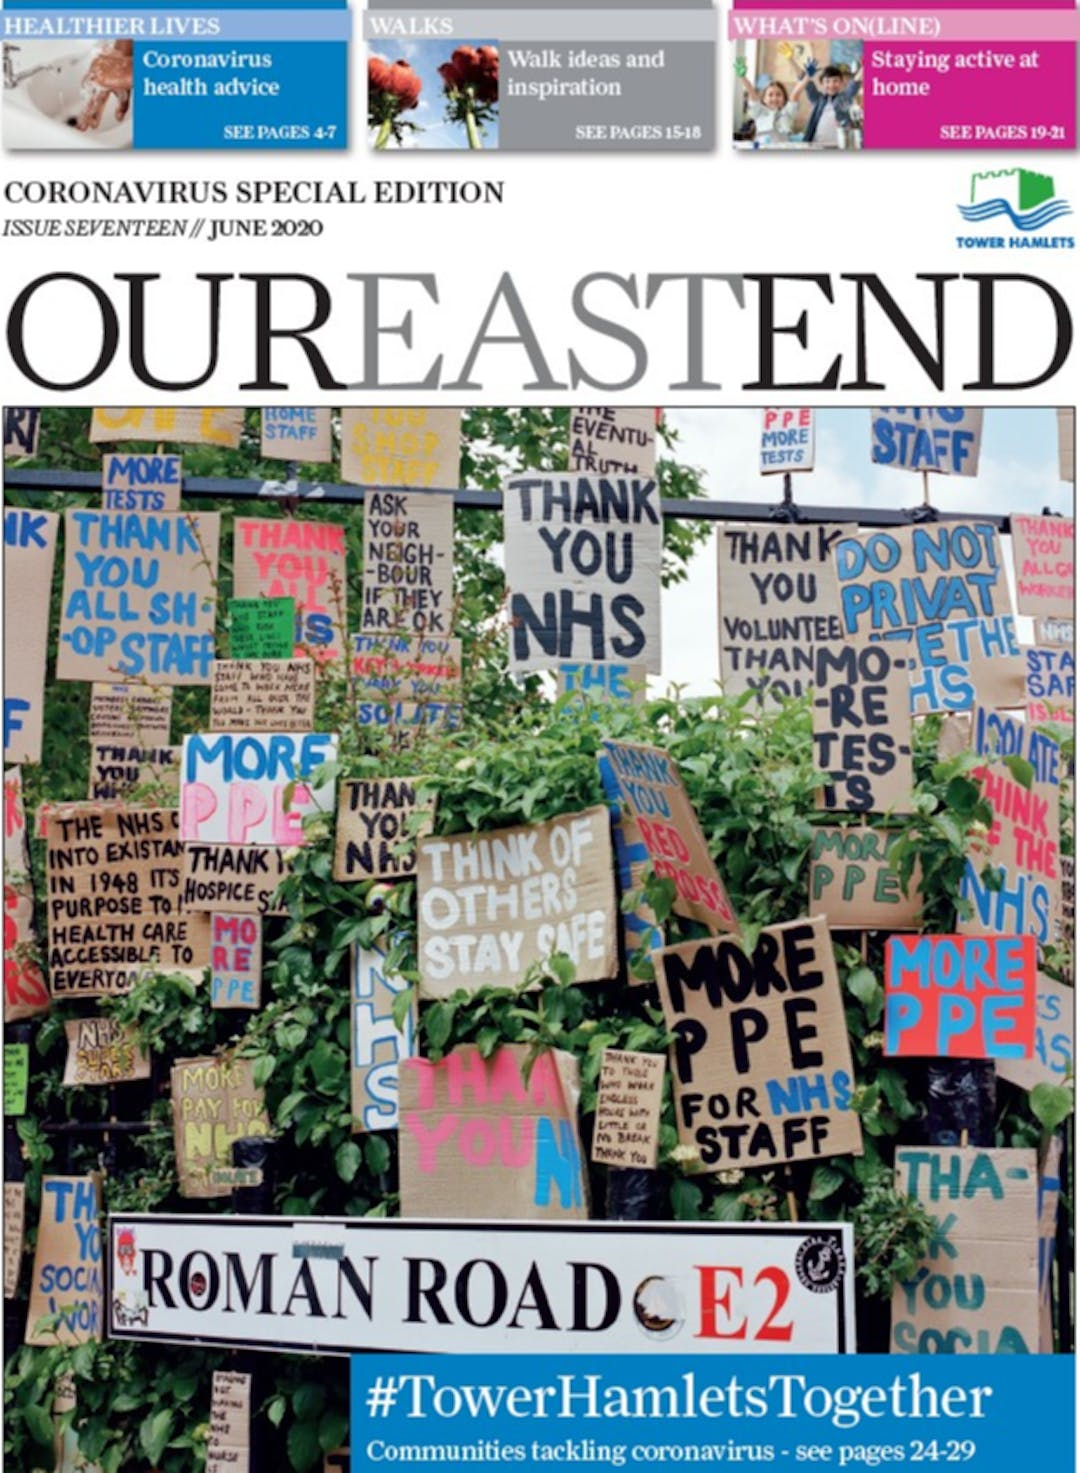 An image of the front cover of the June 2020 Our East End.